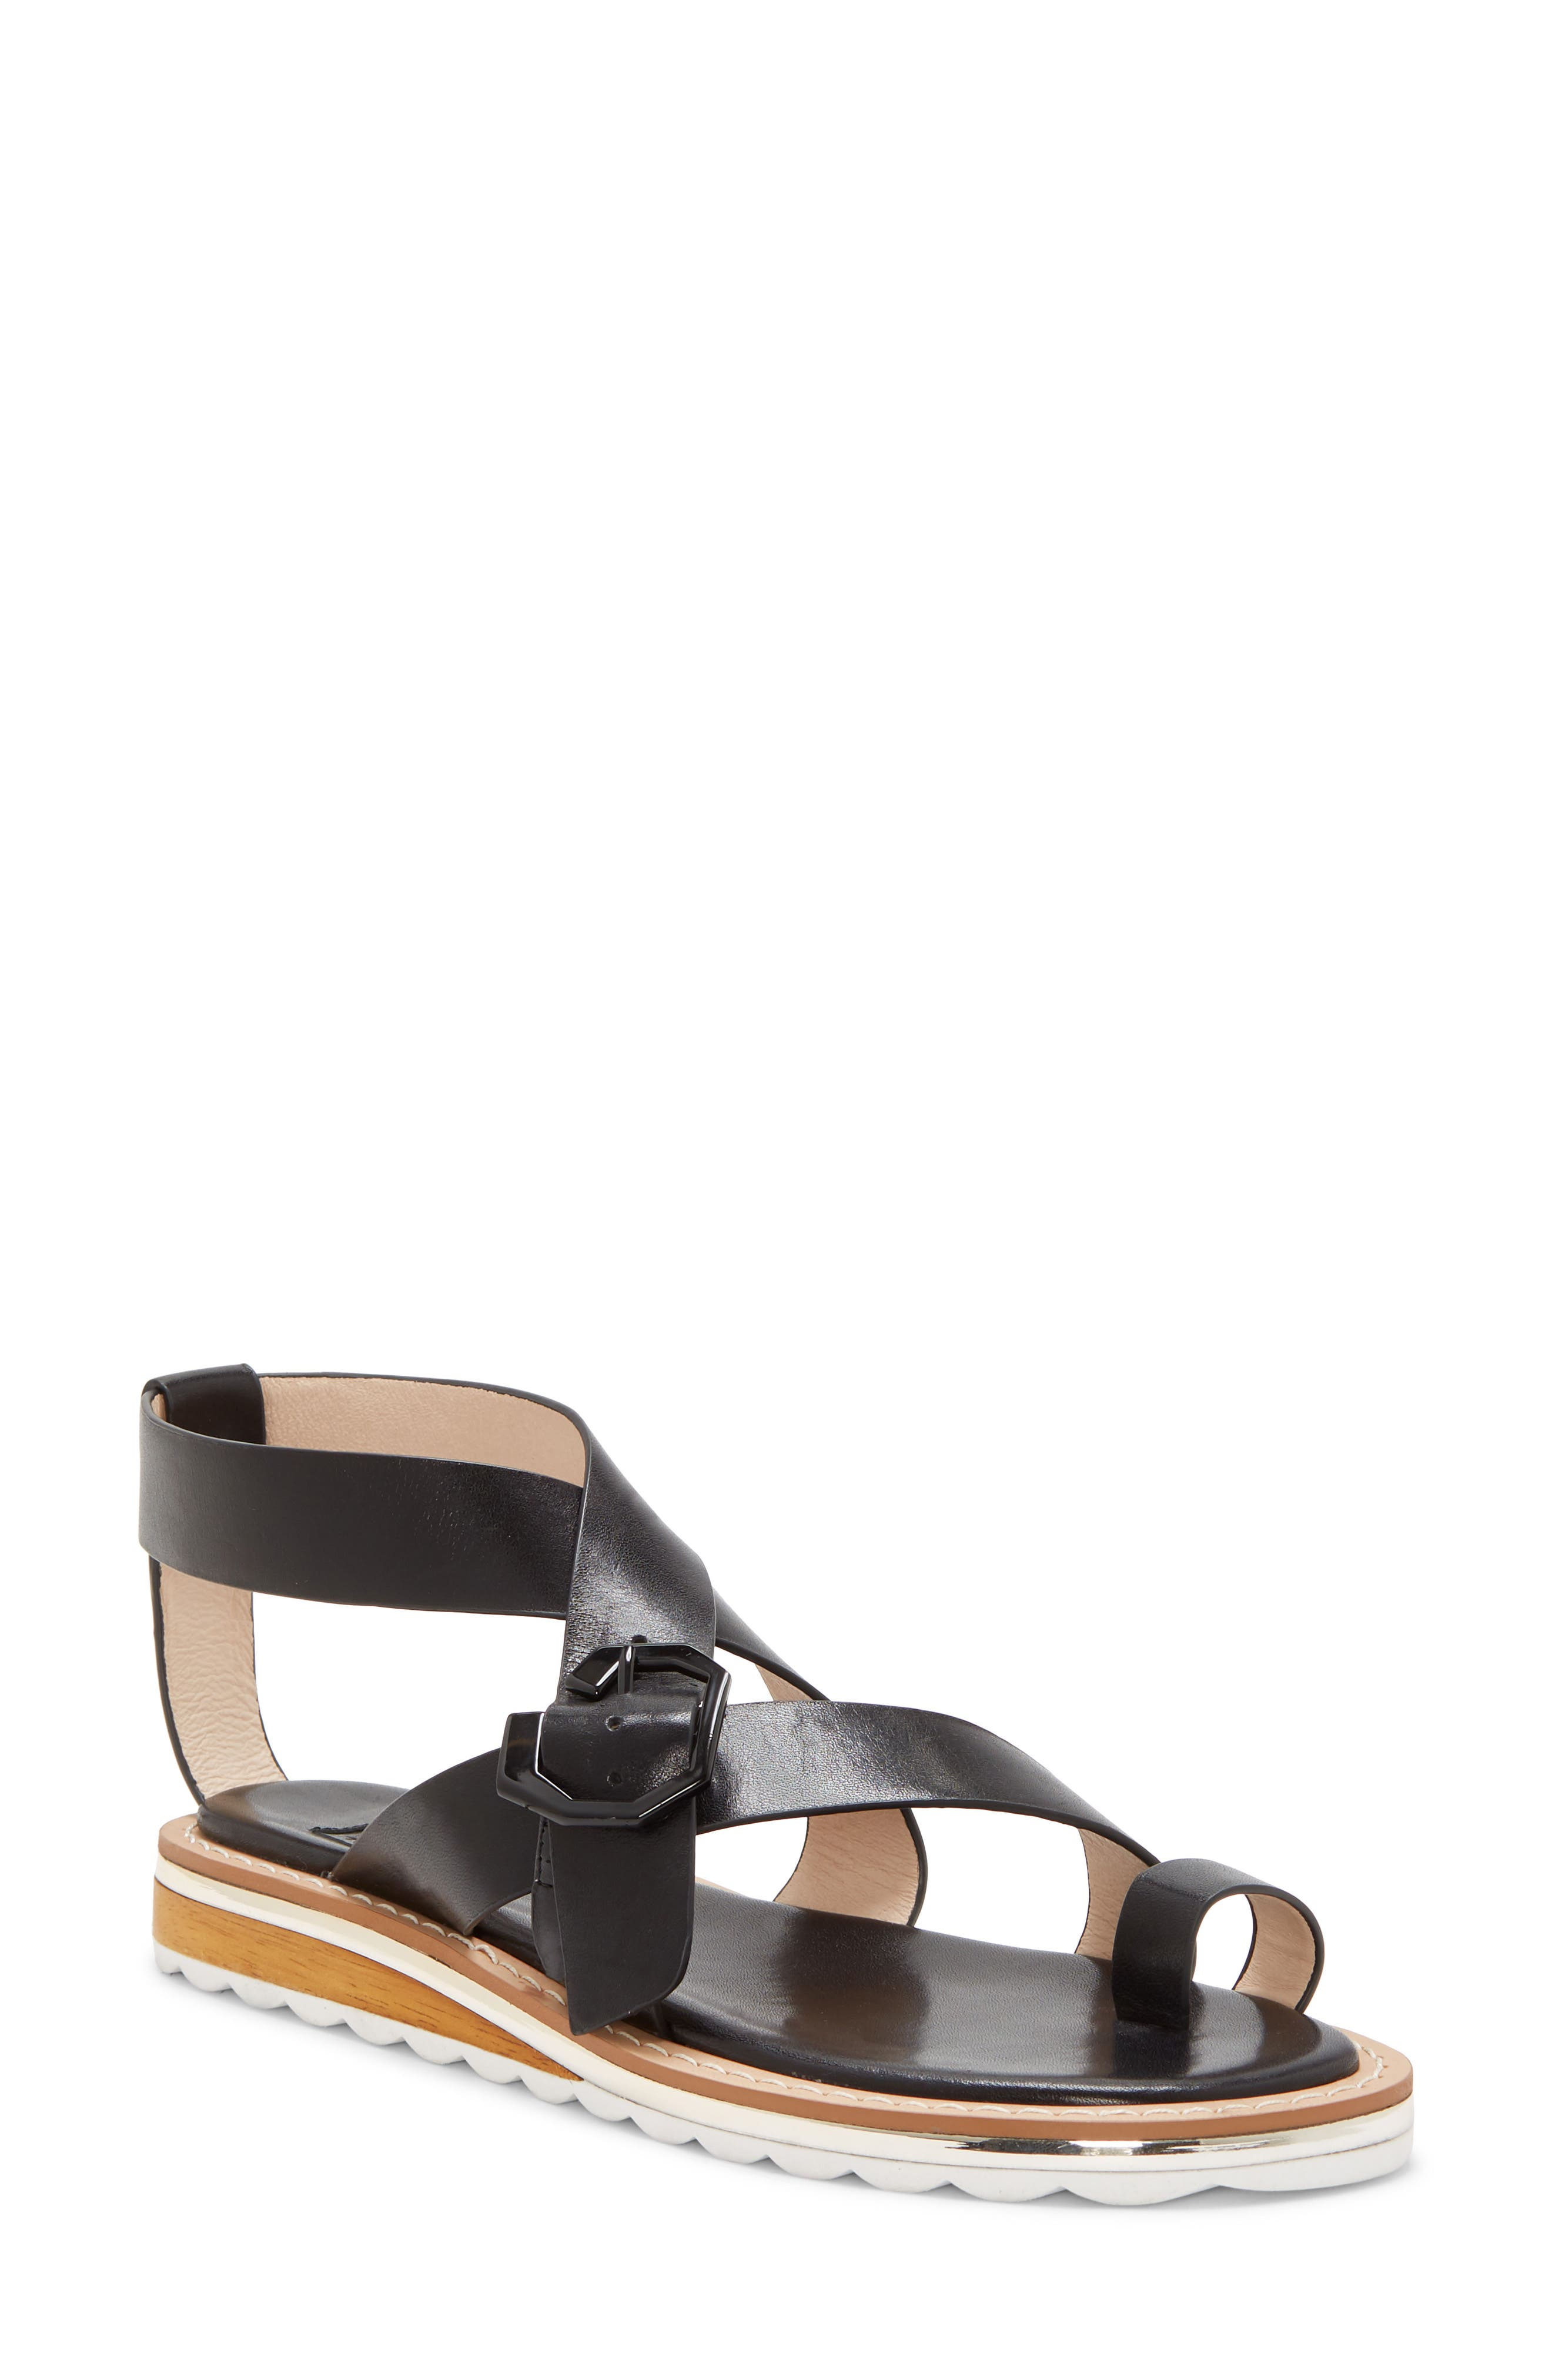 Gladiator style takes a modern turn with this strappy toe-loop sandal accented with metallic trim at the wedge heel. Style Name: Louise Et Cie Esmond Gladiator Sandal (Women). Style Number: 6017210 1. Available in stores.